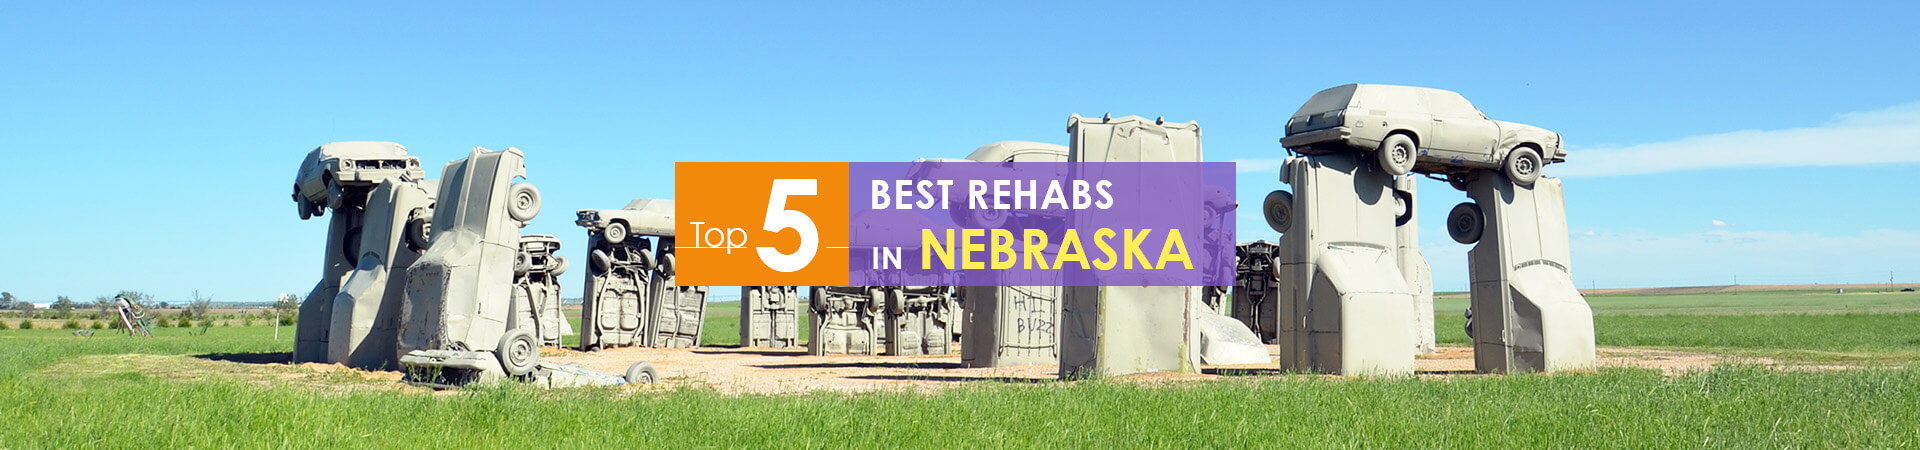 Nebrasks Carhenge monument and top 5 rehabs caption